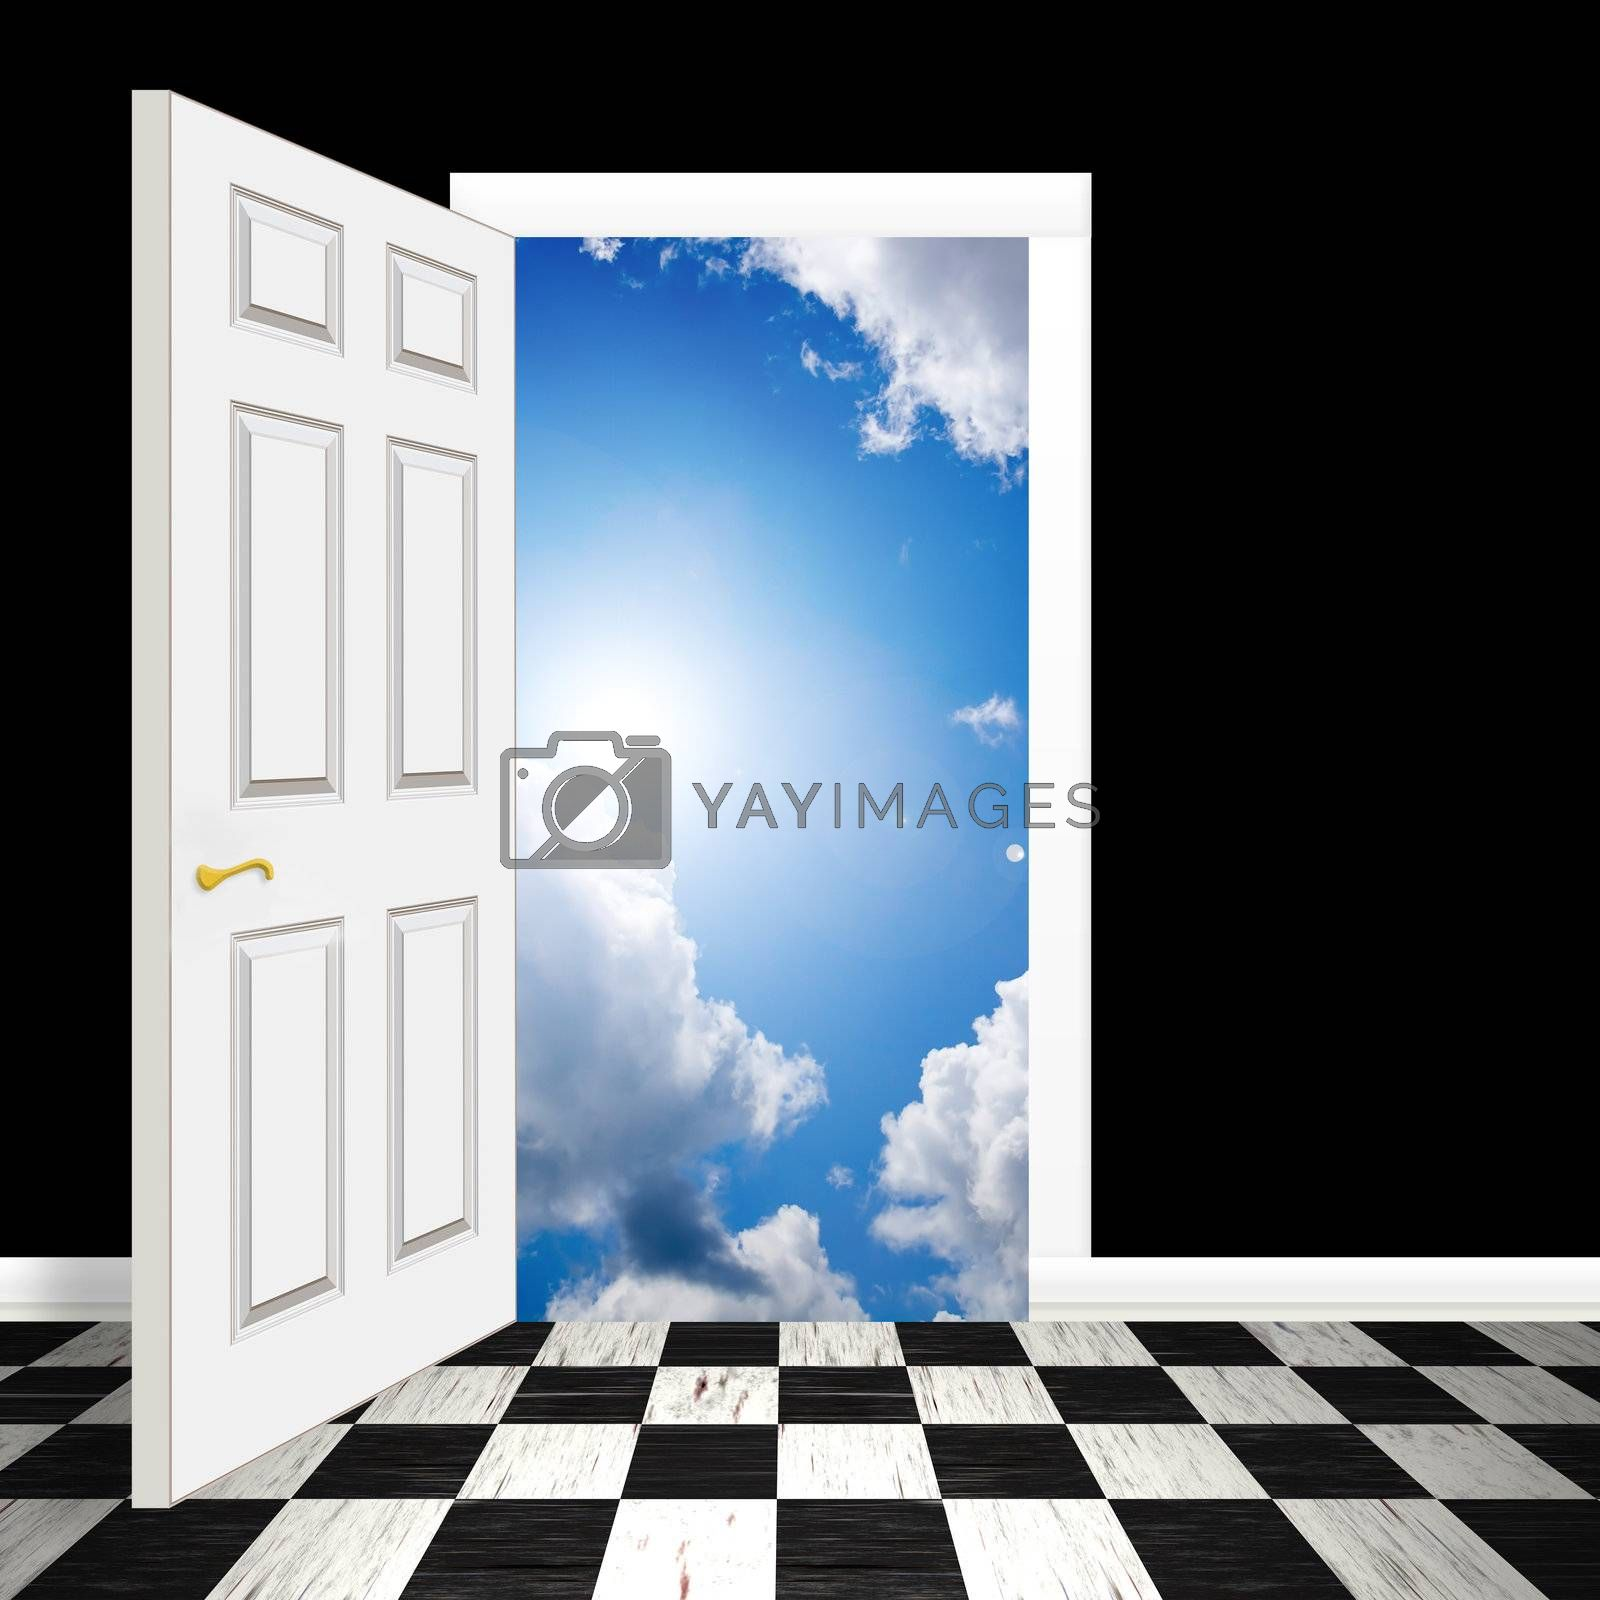 An opened door or entrance leading to a blue sky with fluffy clouds.